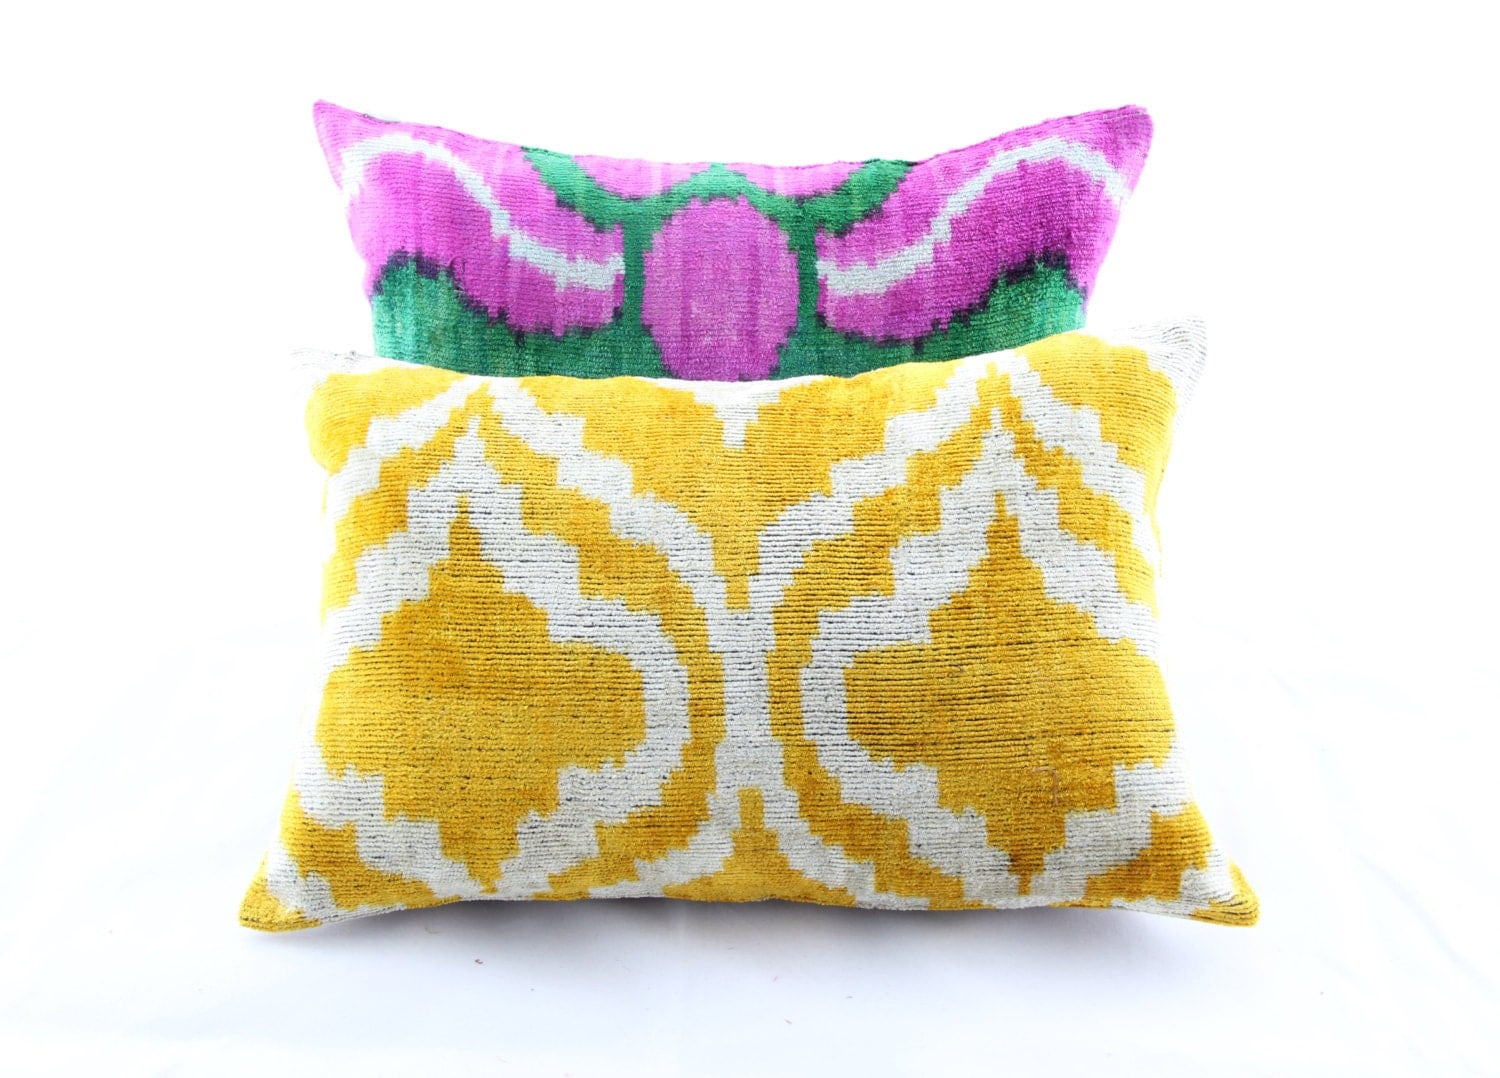 Berzey Pillows /Handmade Velvet ikat Pillows 2 pcs Awesome